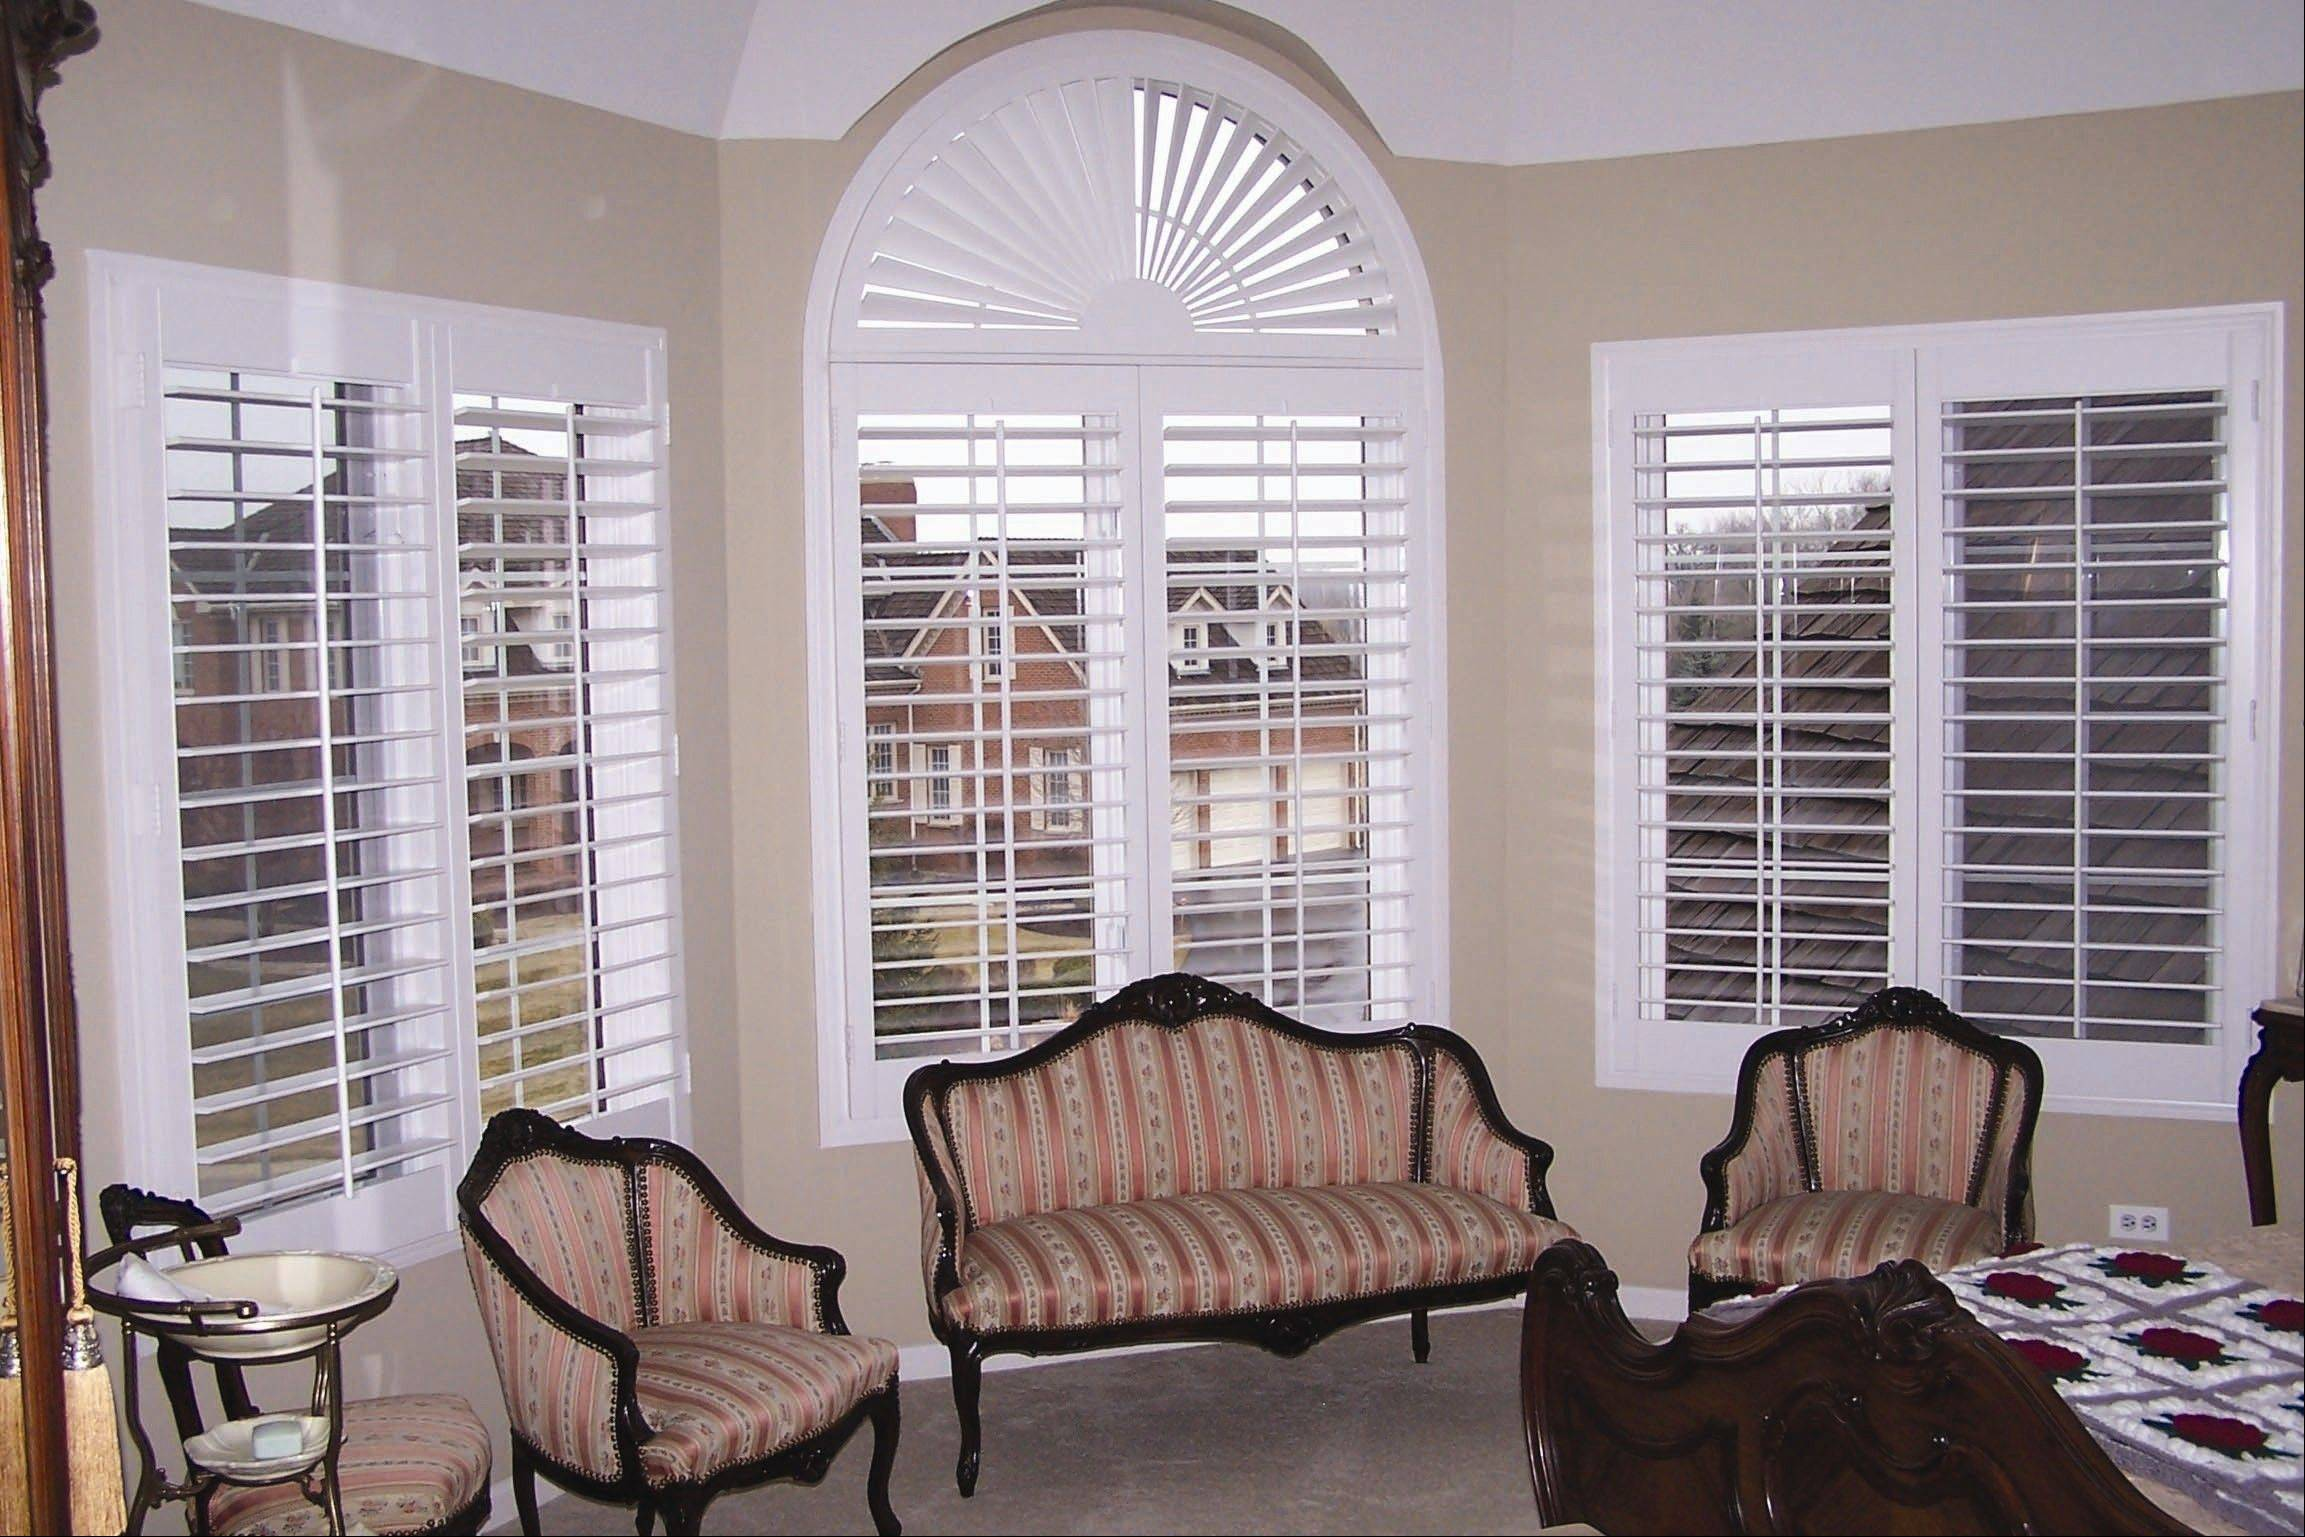 Quality shutters never go out of style, said Shutter Hut owner Michael Ready.